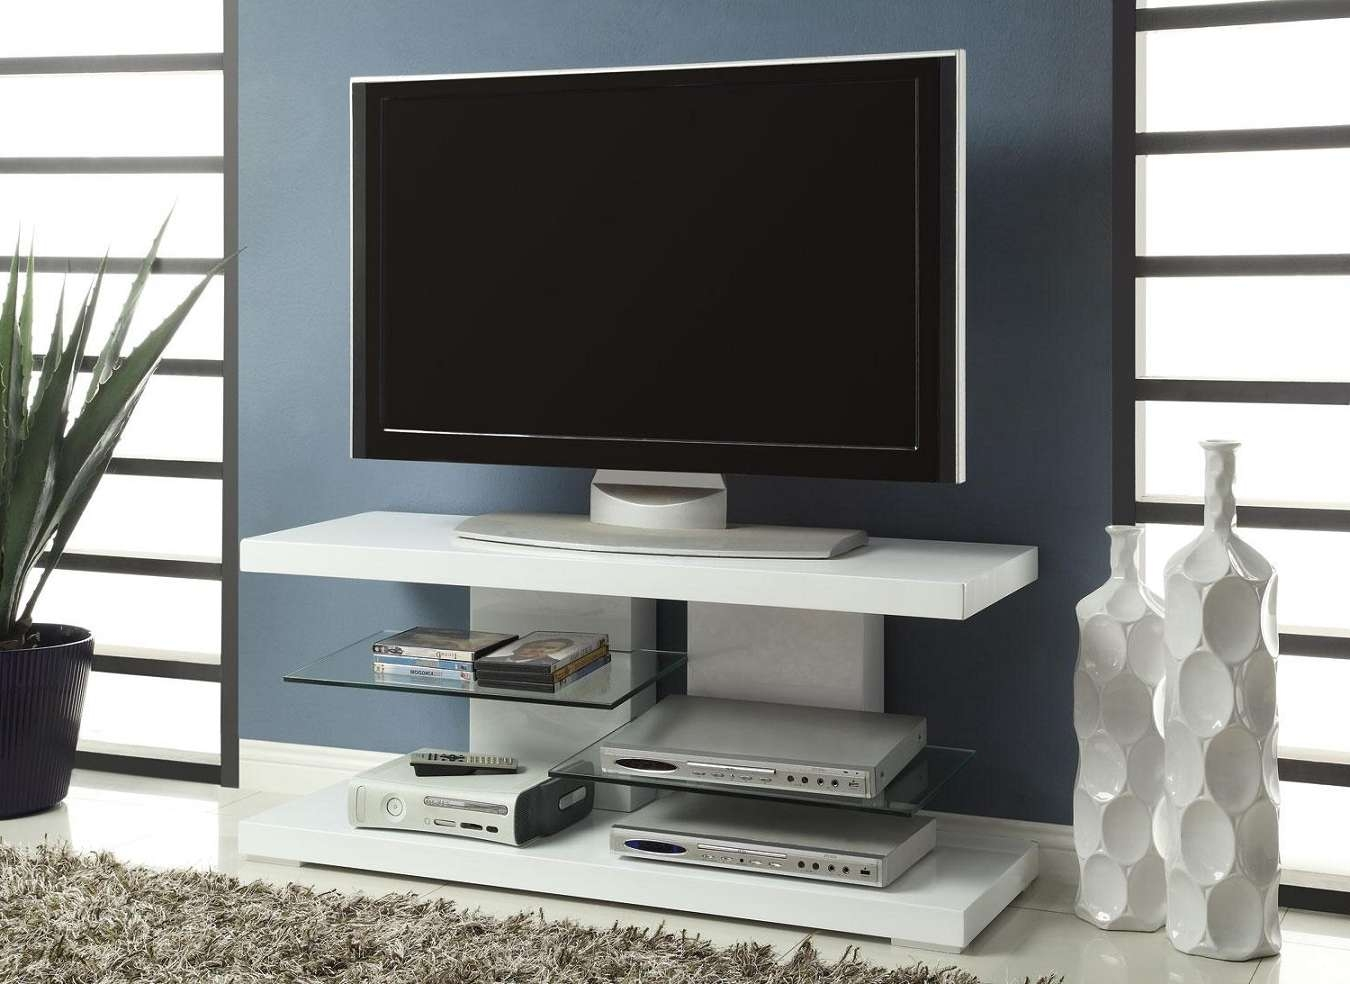 White Painted Plywood Flat Screen Tv Stand With Tempered Glass With Regard To Contemporary Tv Stands For Flat Screens (View 7 of 20)